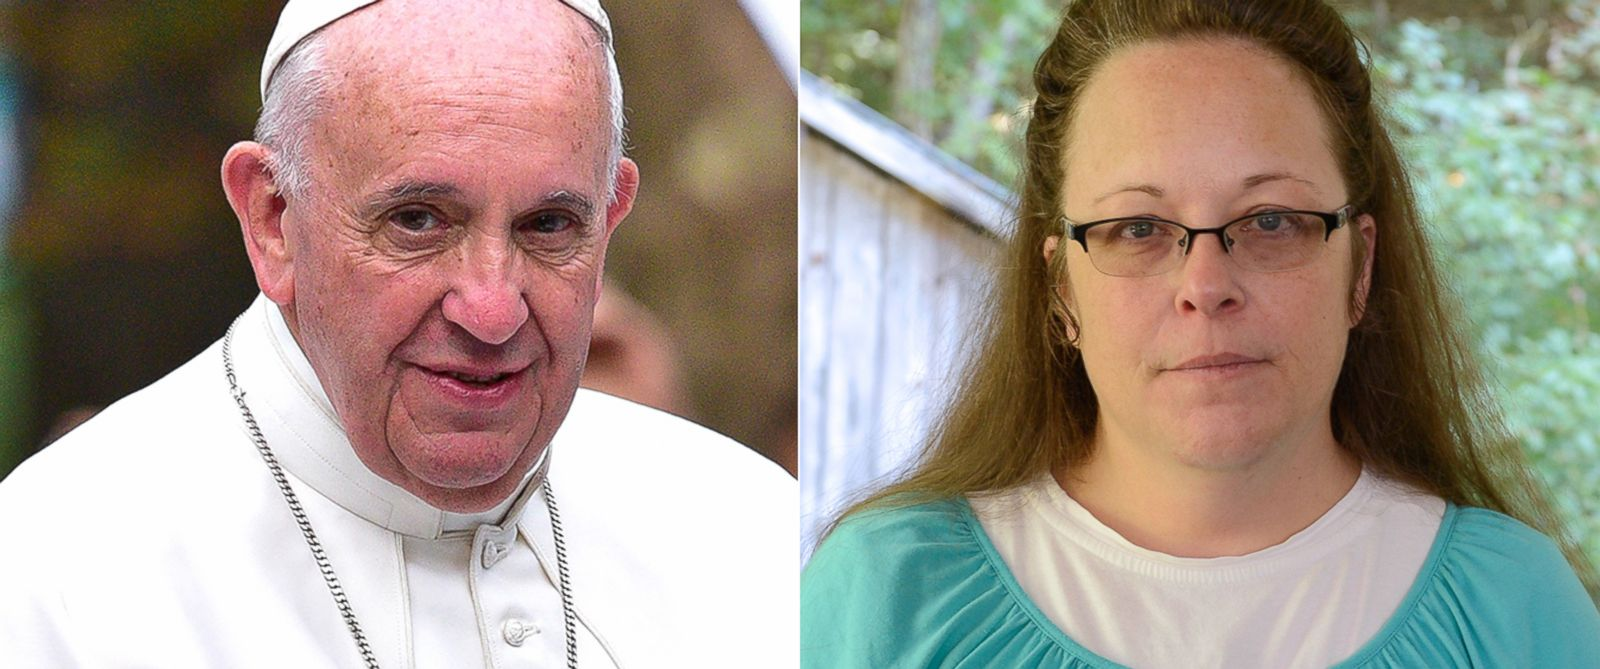 PHOTO: Pictured from left, Pope Francis and Kim Davis.